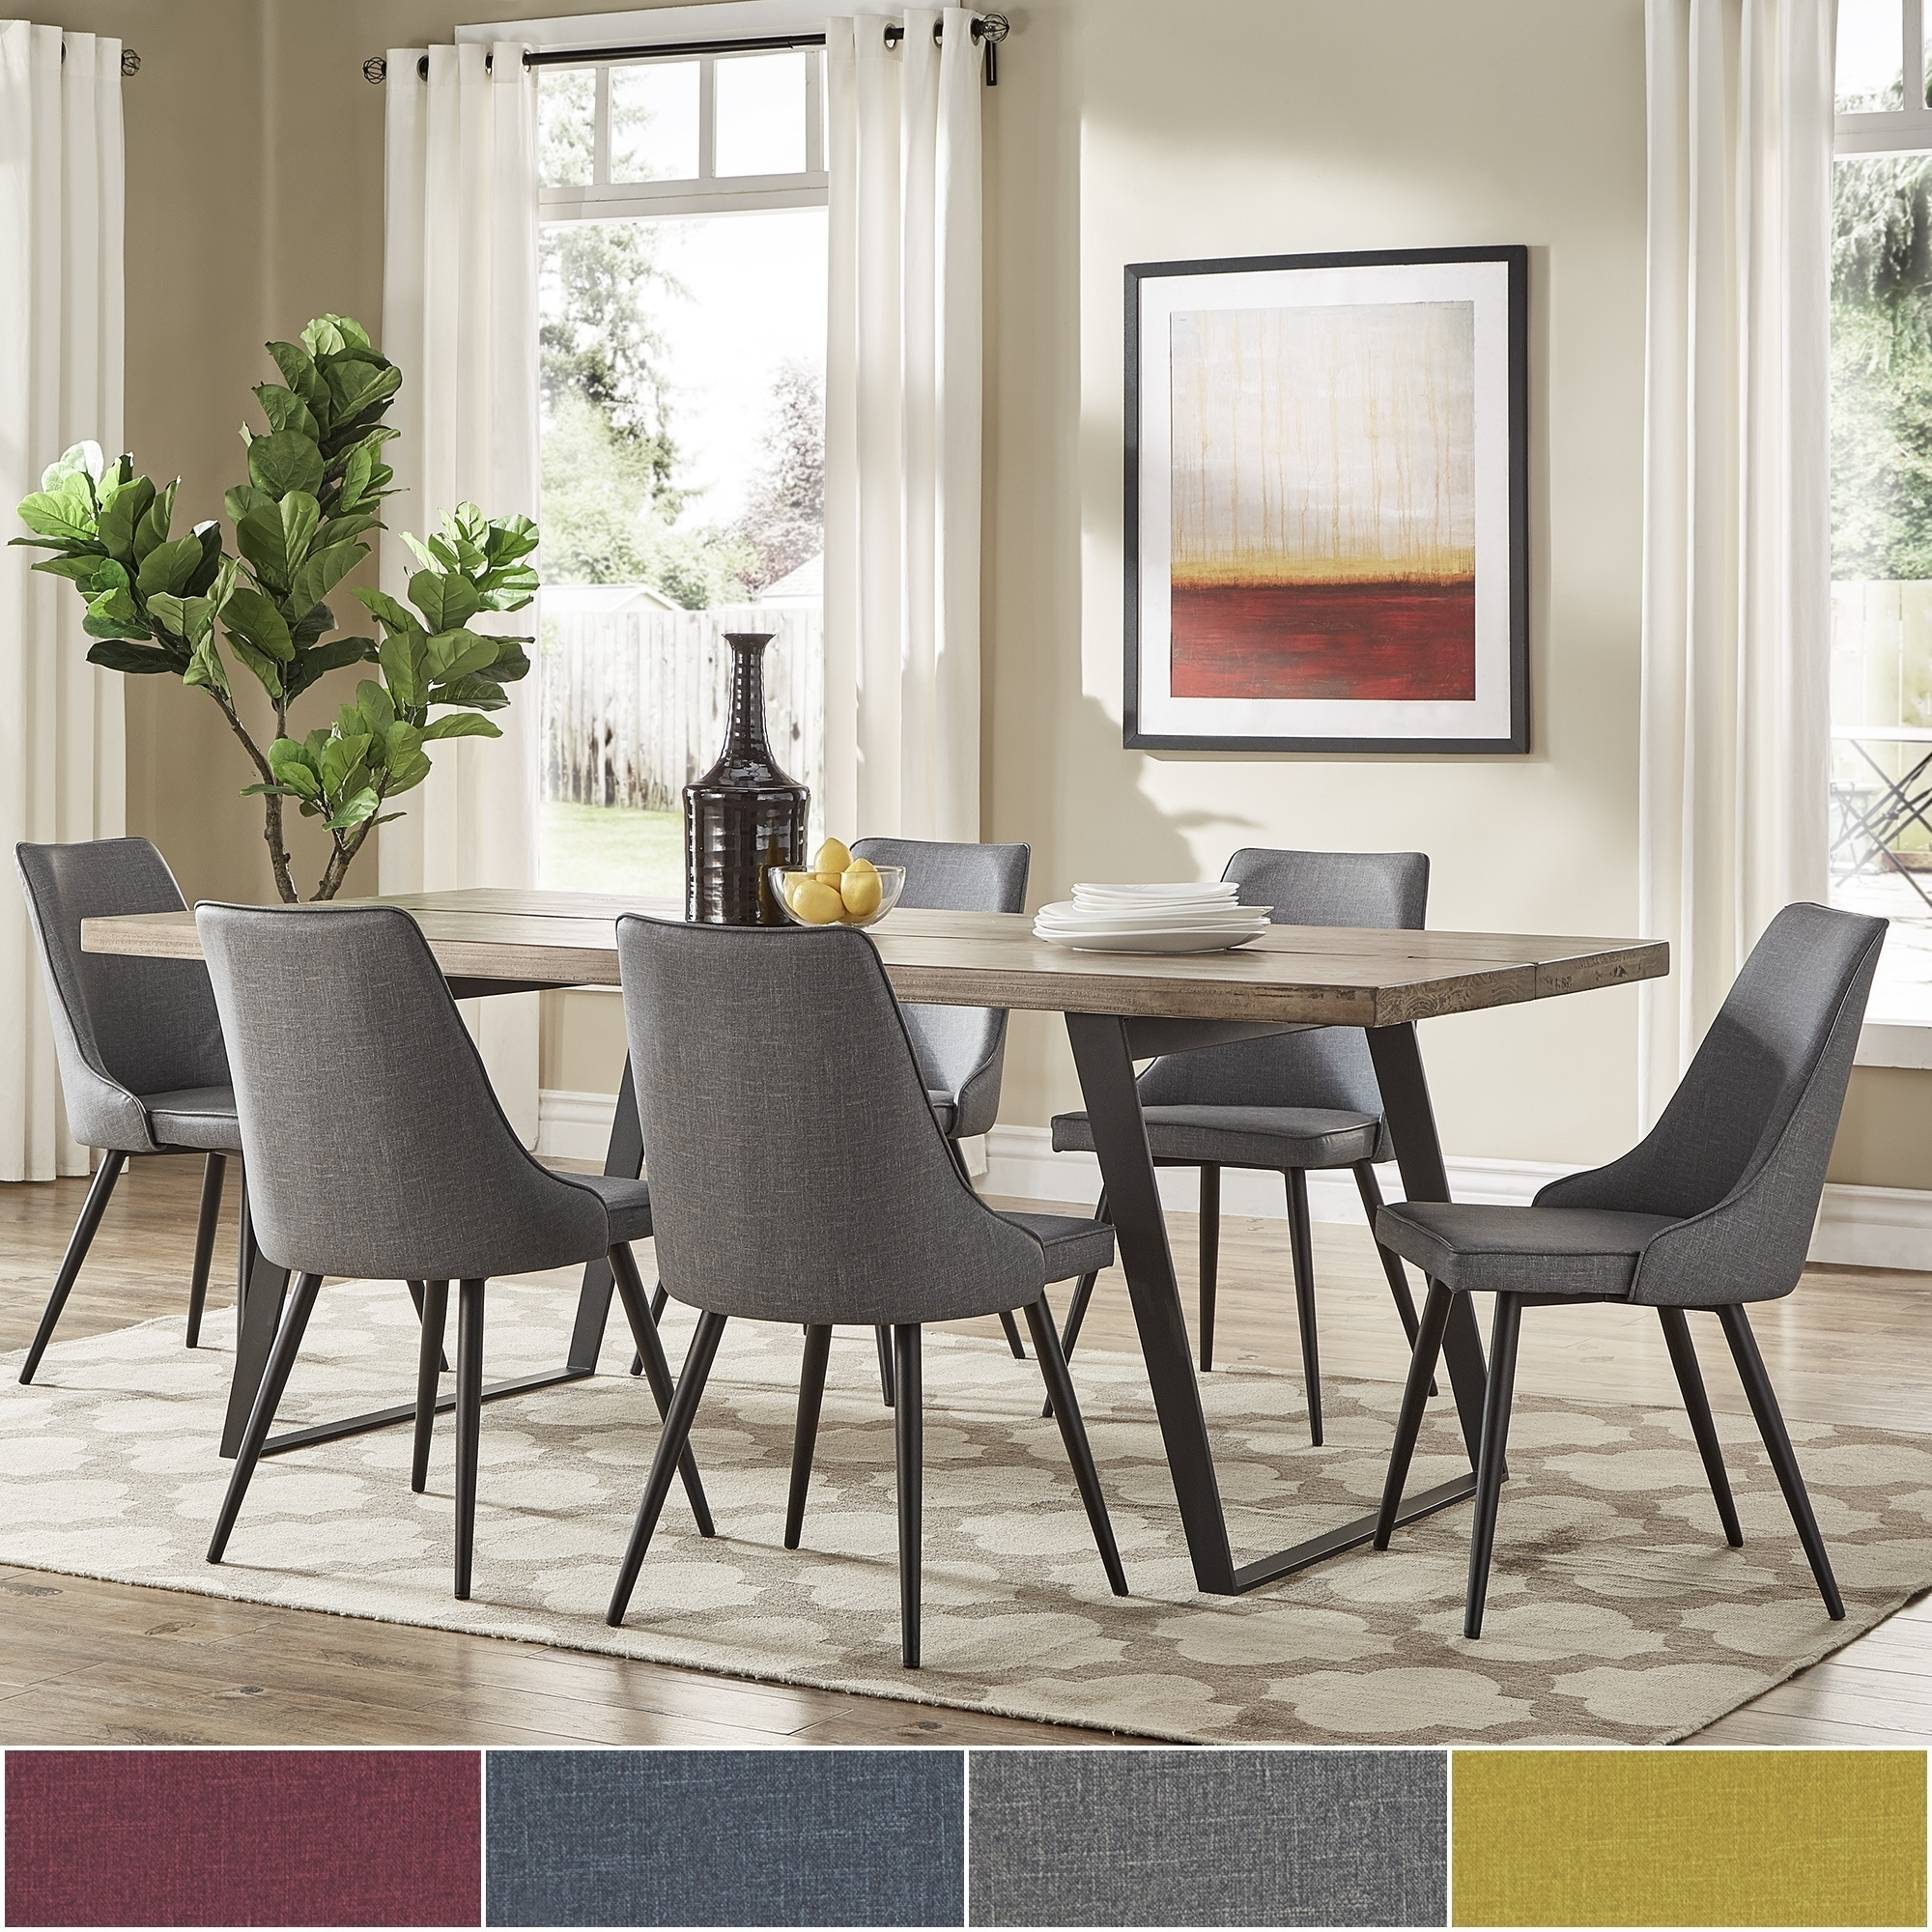 Designer dinning table home design and decor for Table design with div